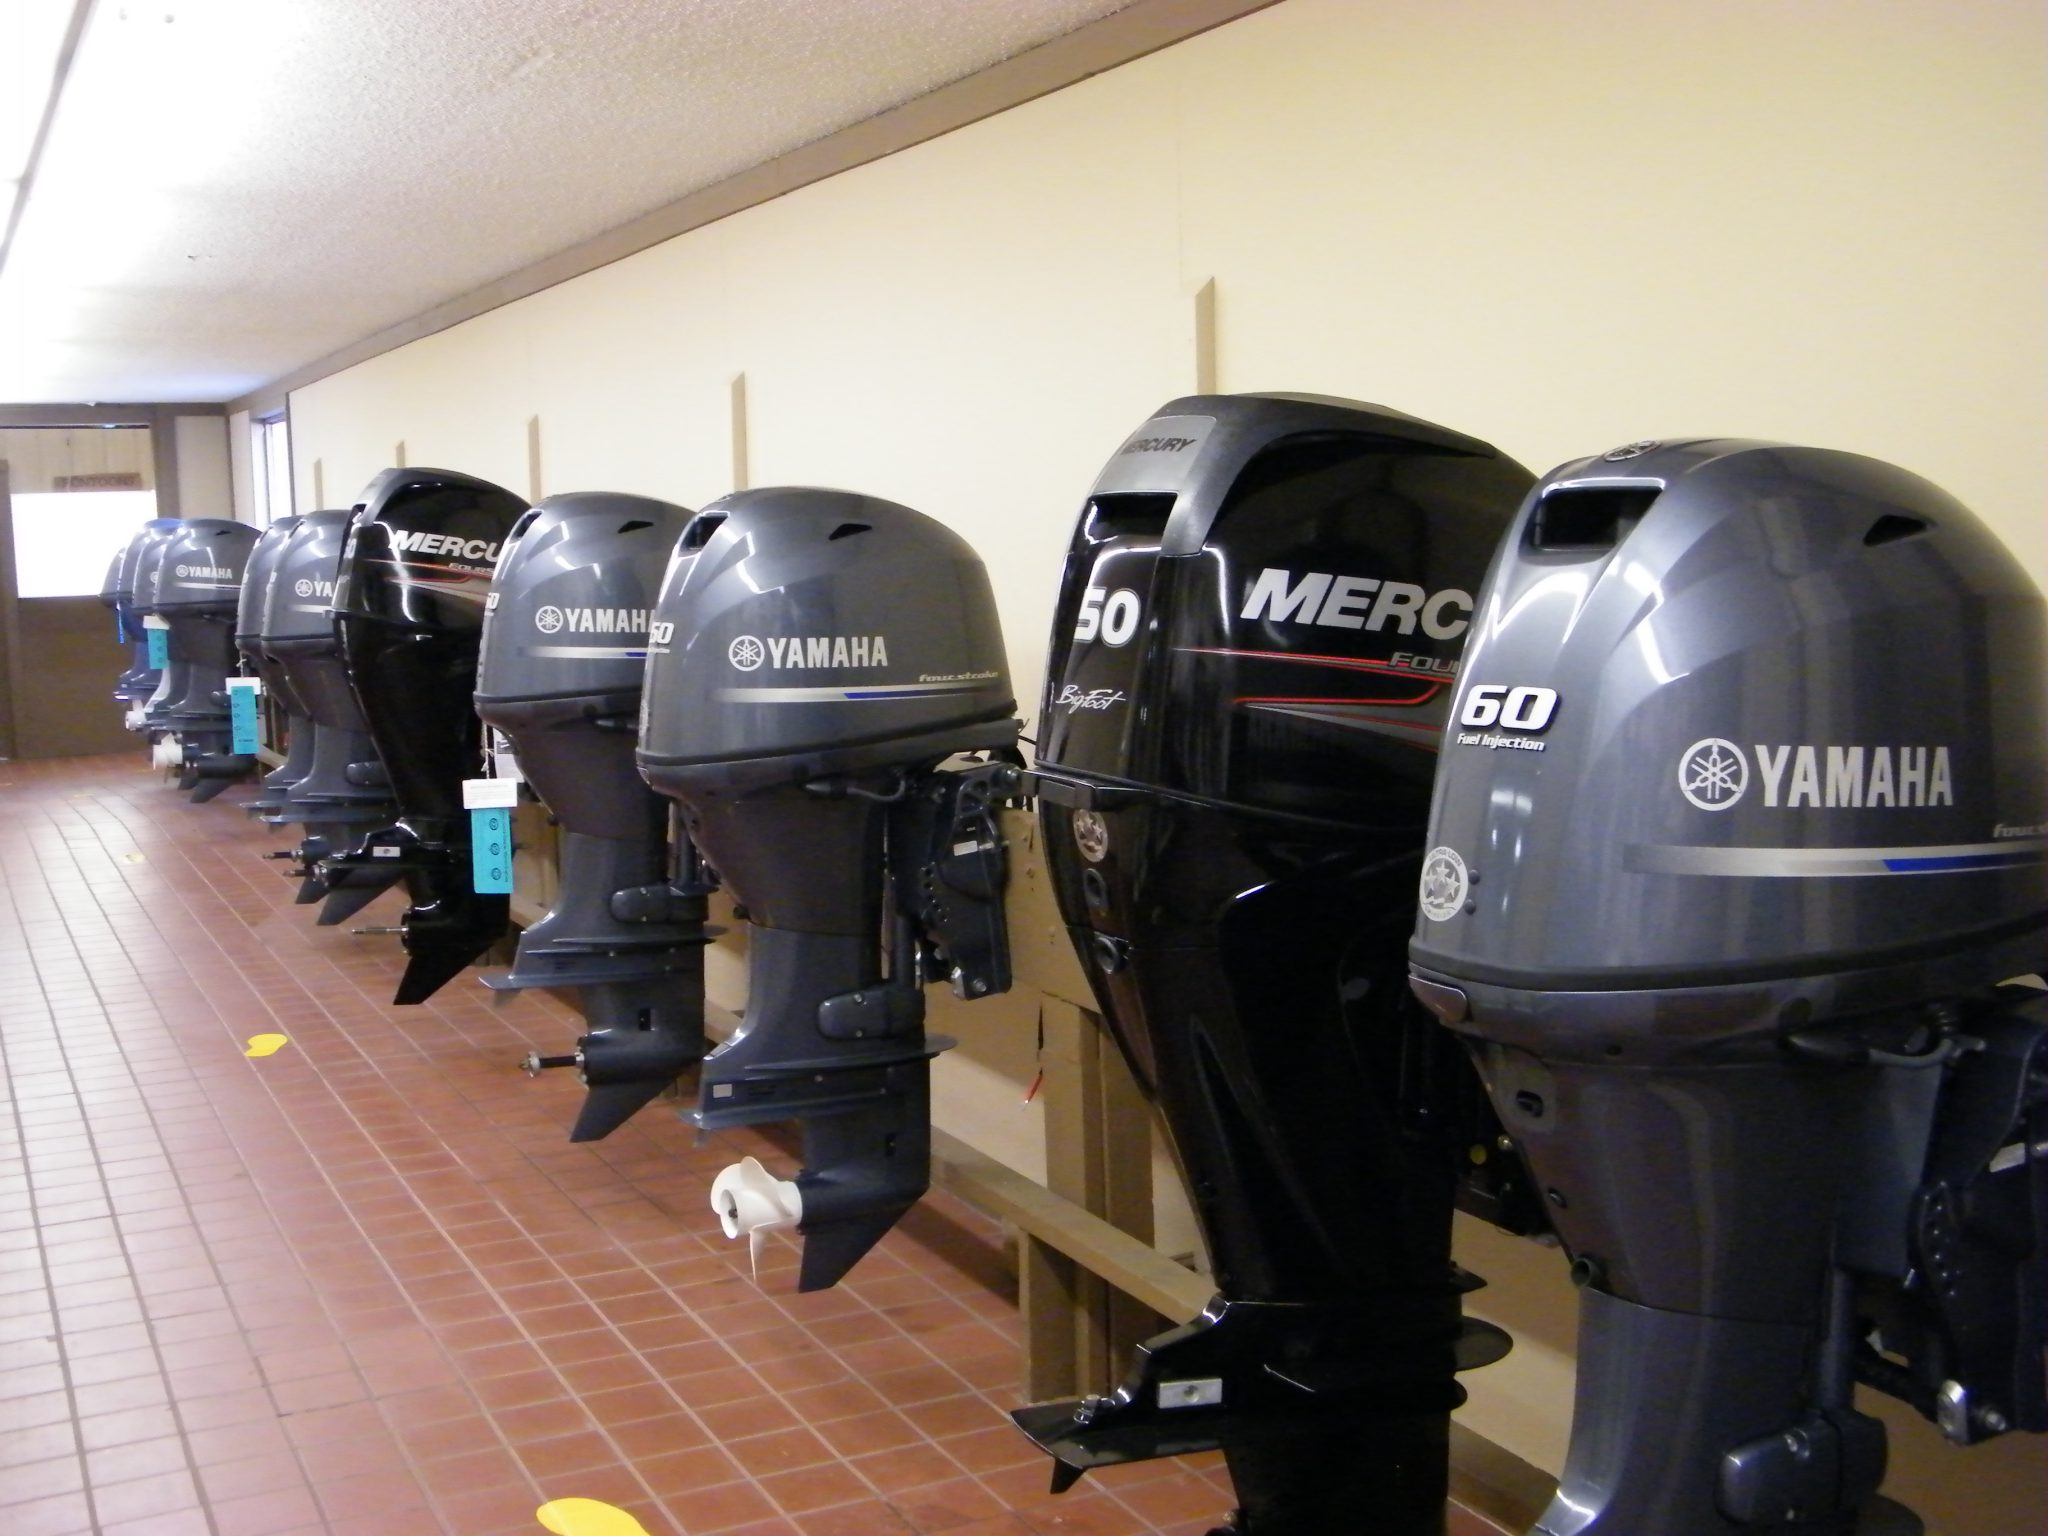 Motors trailers hallberg marine for Outboard motors for sale in wisconsin